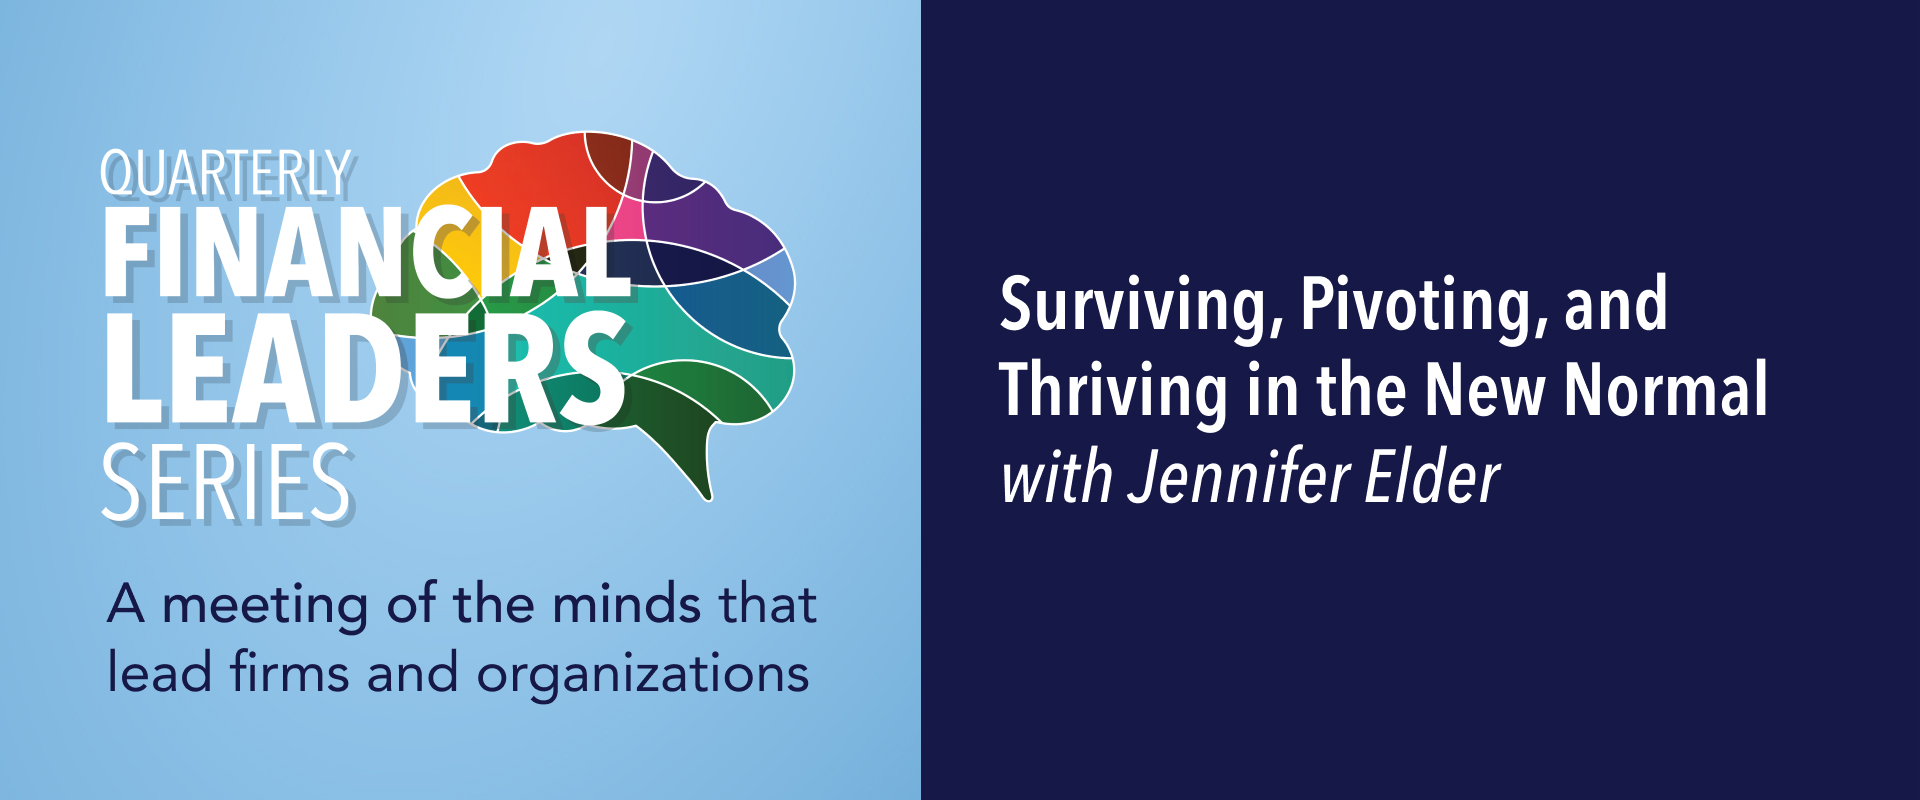 Quarterly Financial Leaders Series: Surviving, Pivoting, and Thriving in the New Normal